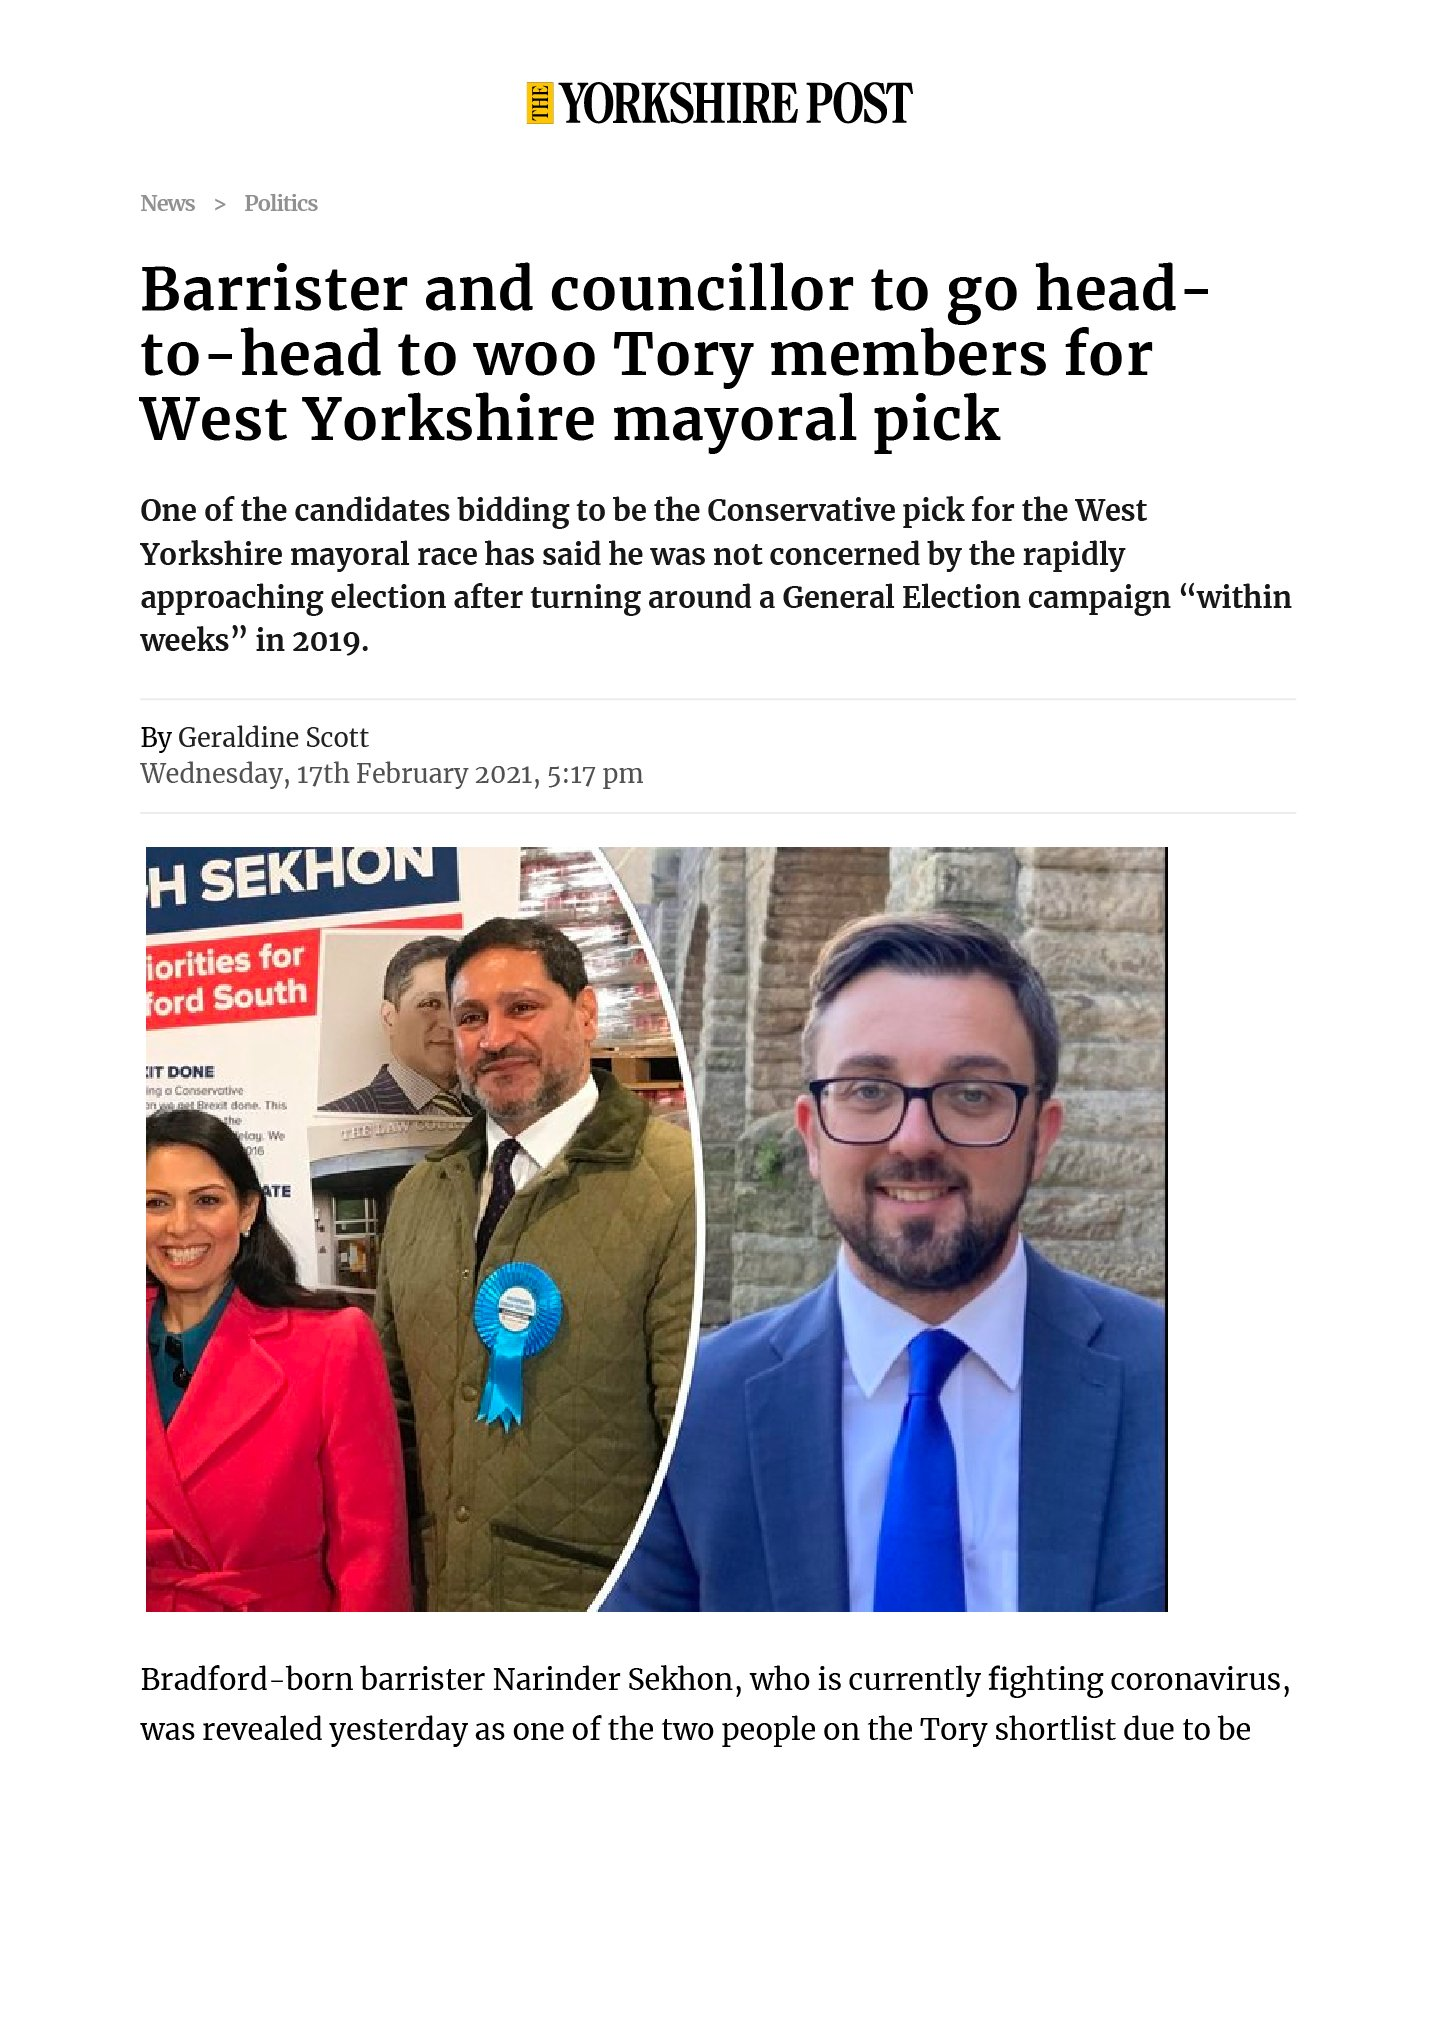 Barrister and councillor to go head-to-head to woo Tory members for West Yorkshire mayoral pick